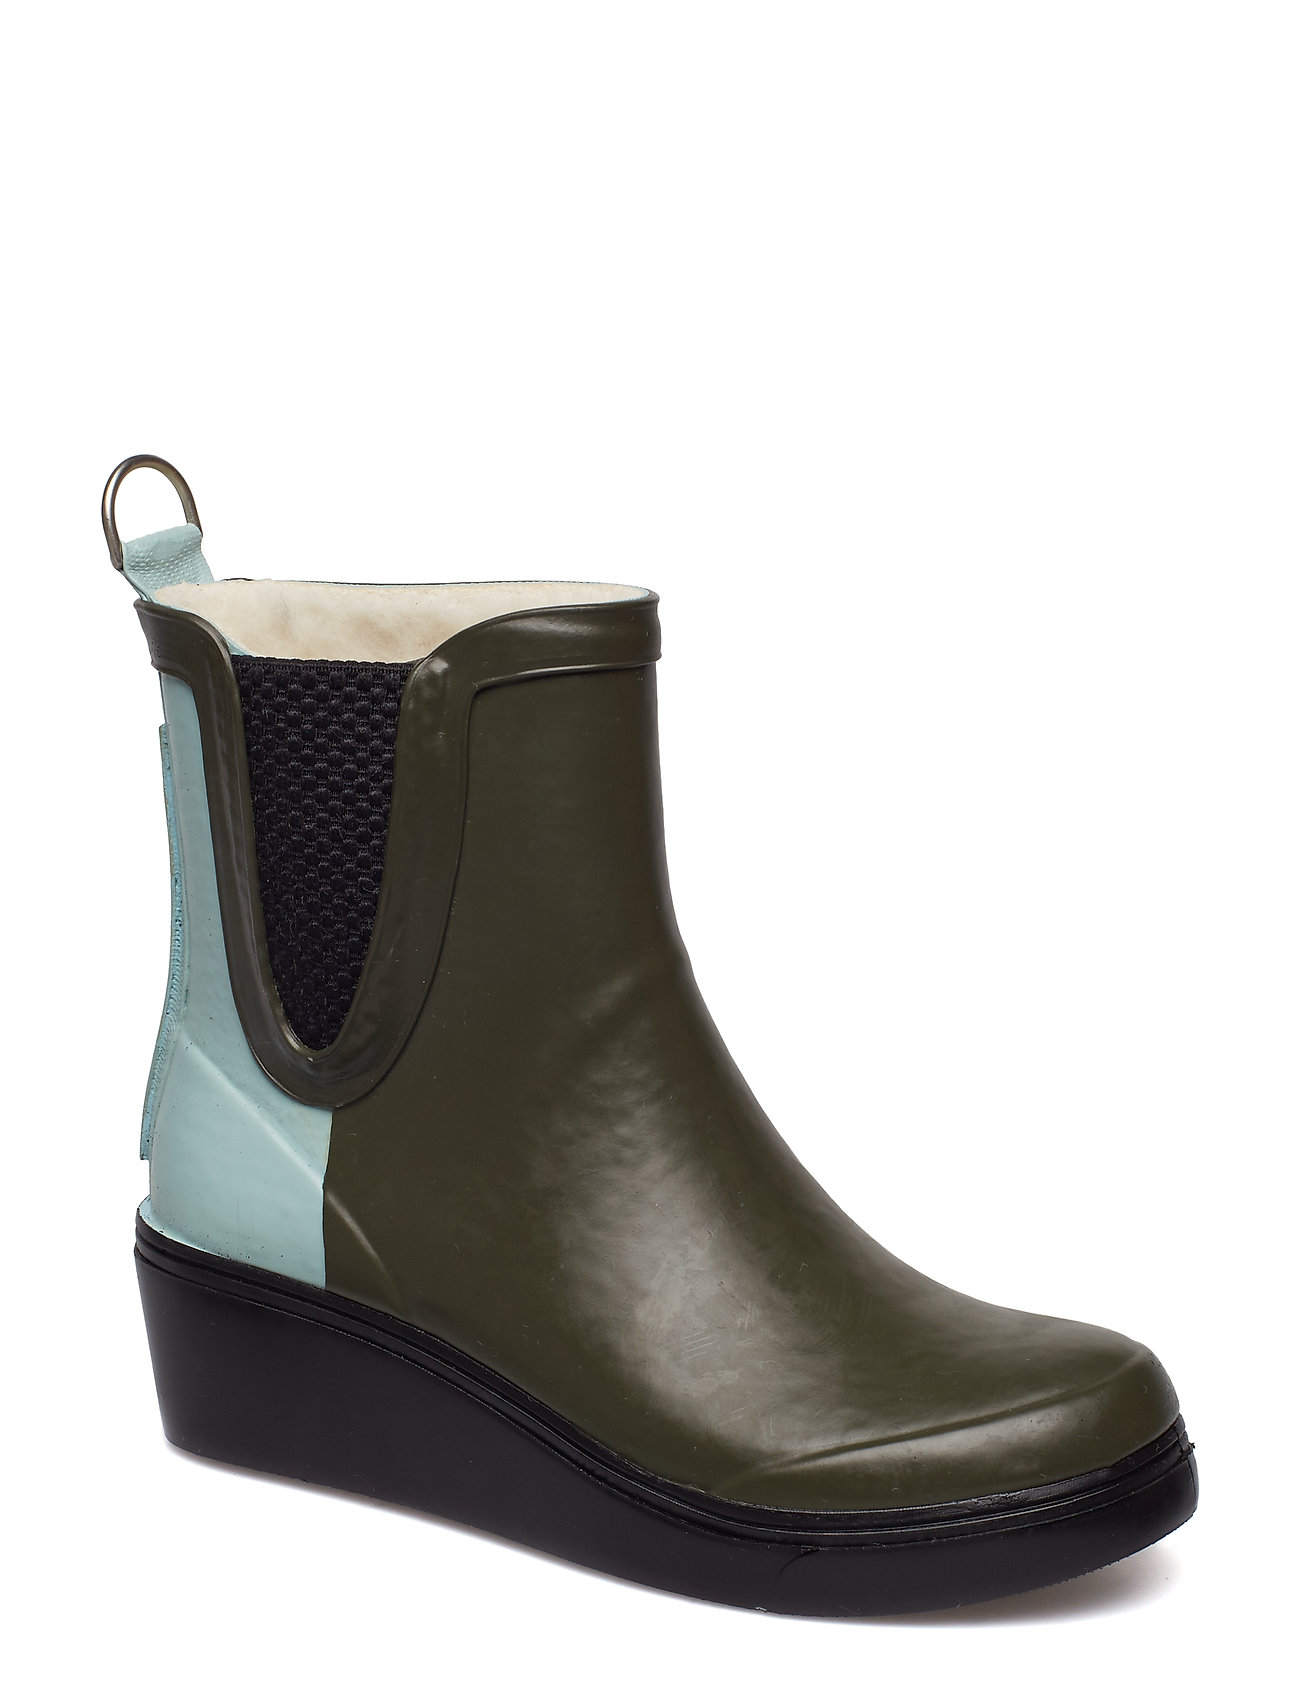 Ilse Jacobsen WOMENS RAIN BOOT